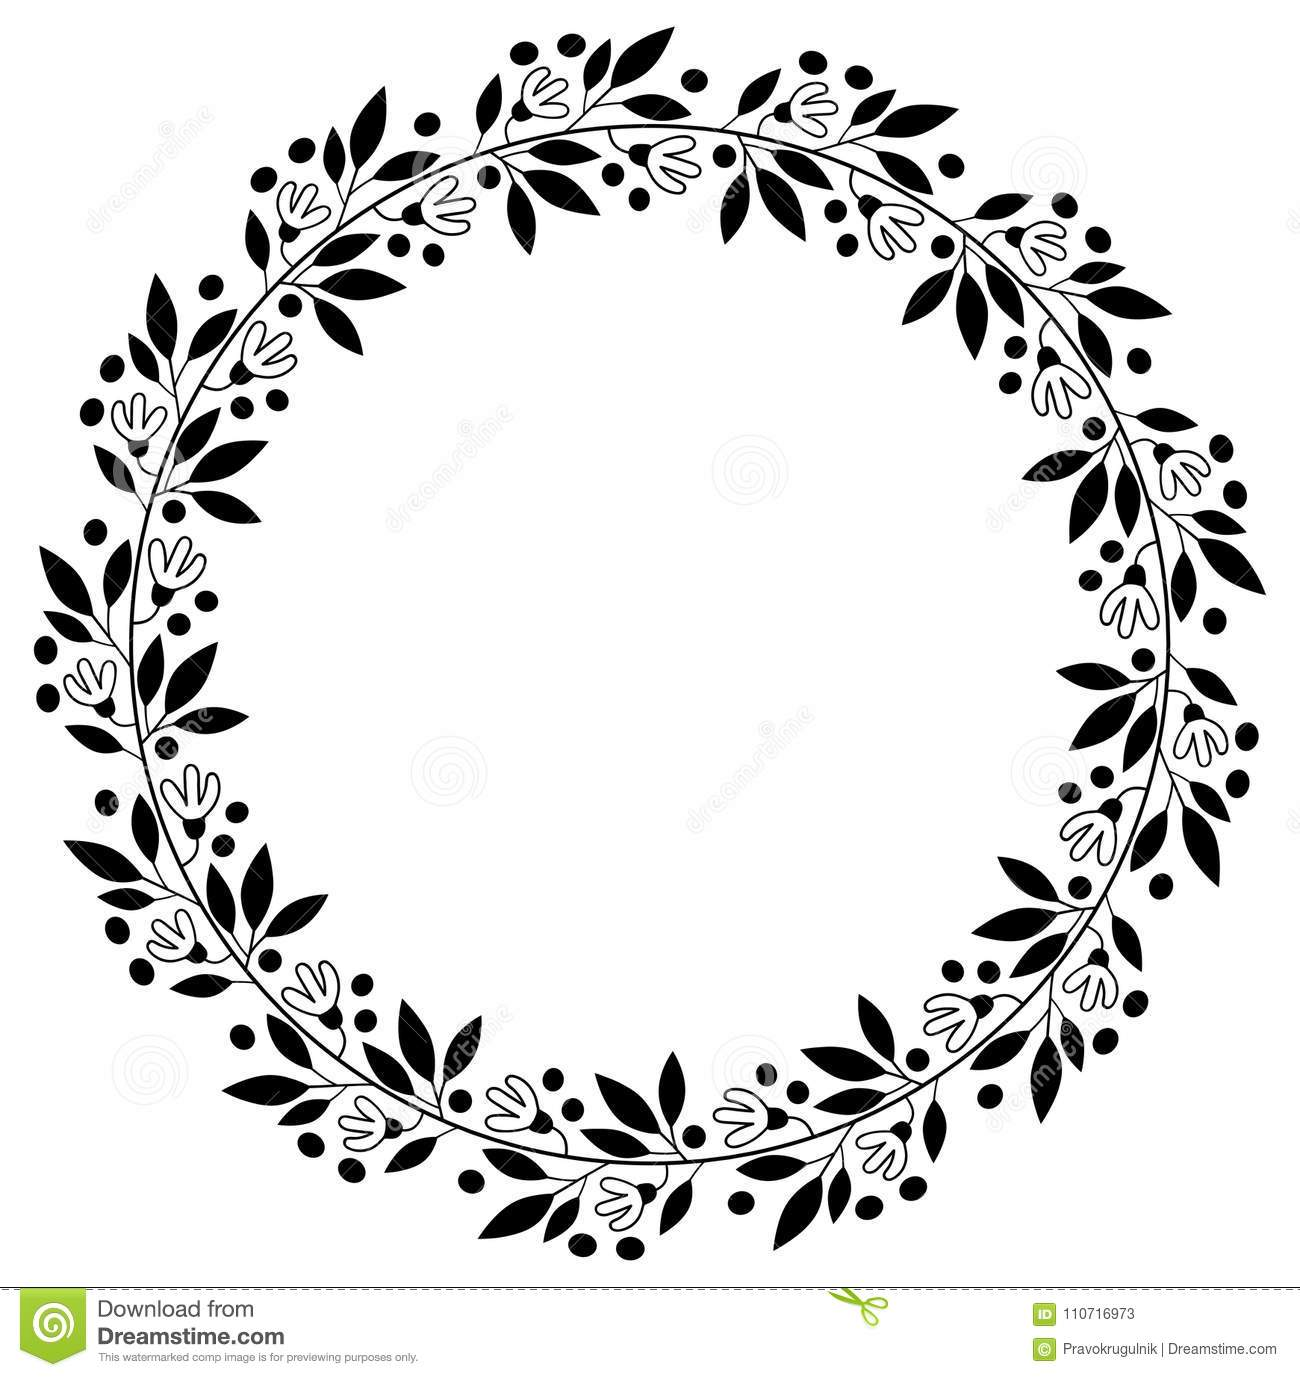 Black Floral Border For Graphic Design Stock Vector Illustration